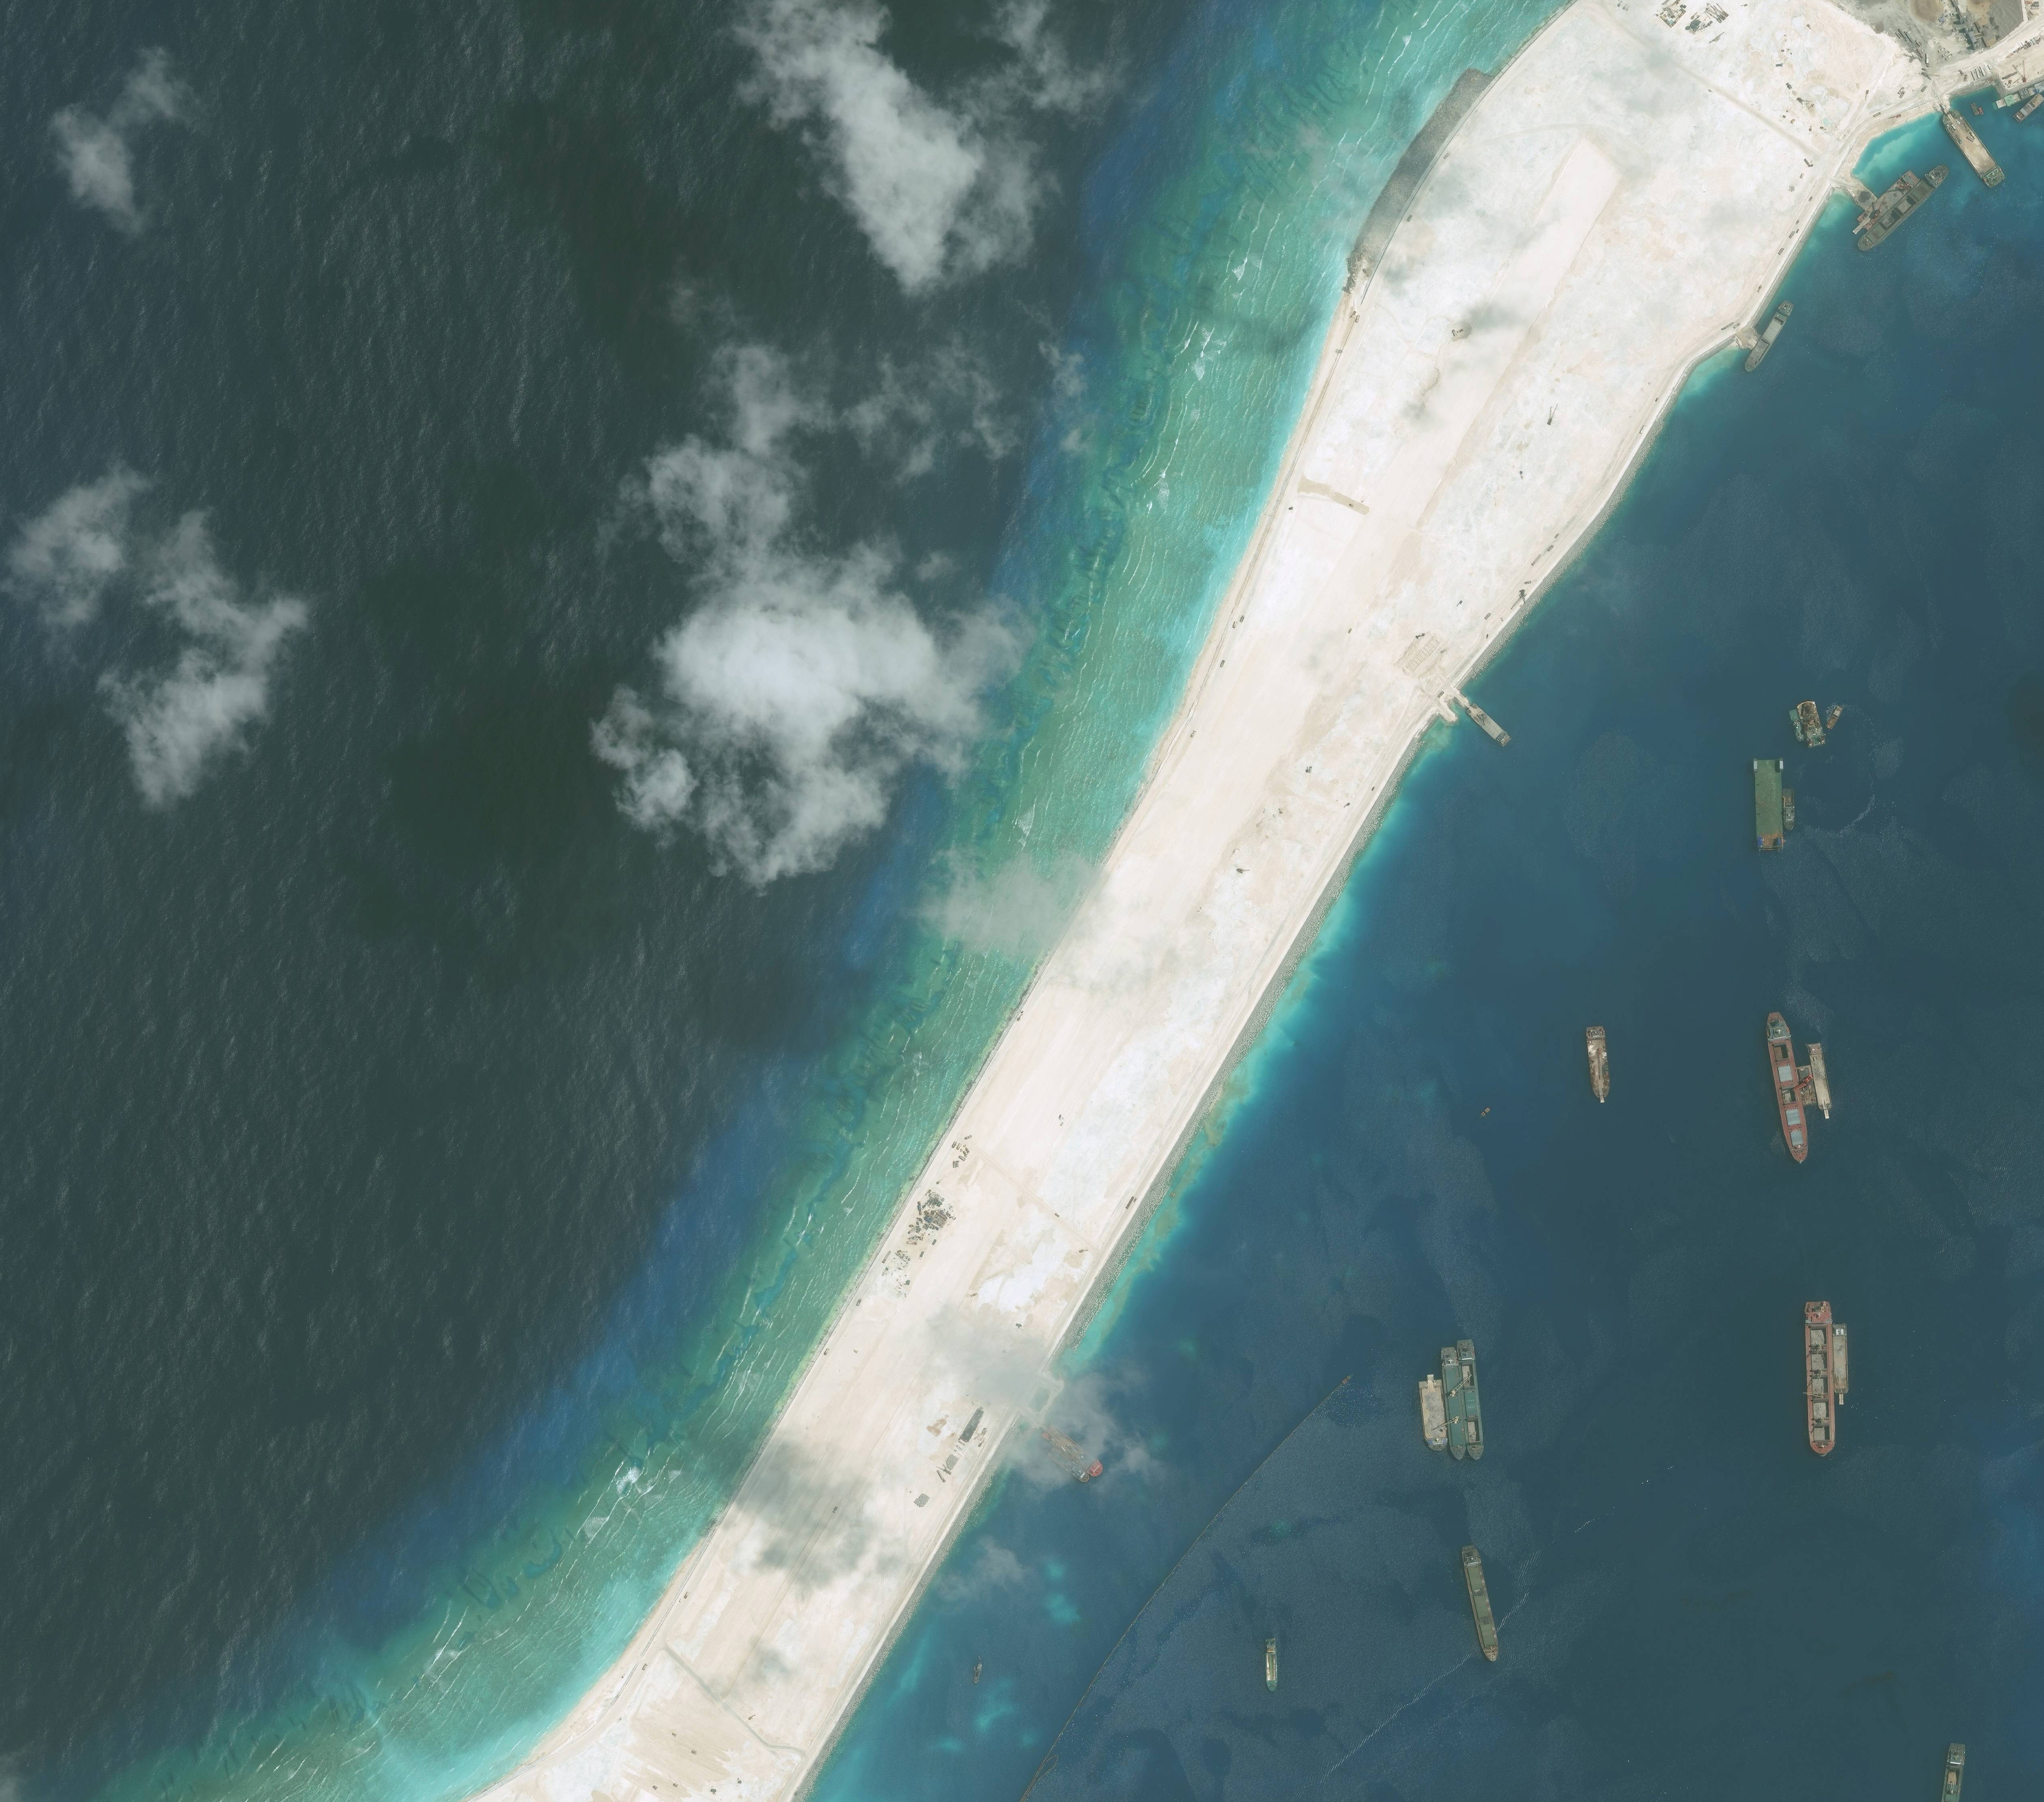 High-resolution imagery of the Subi Reef in the South China Sea, a part of the Spratly Islands group